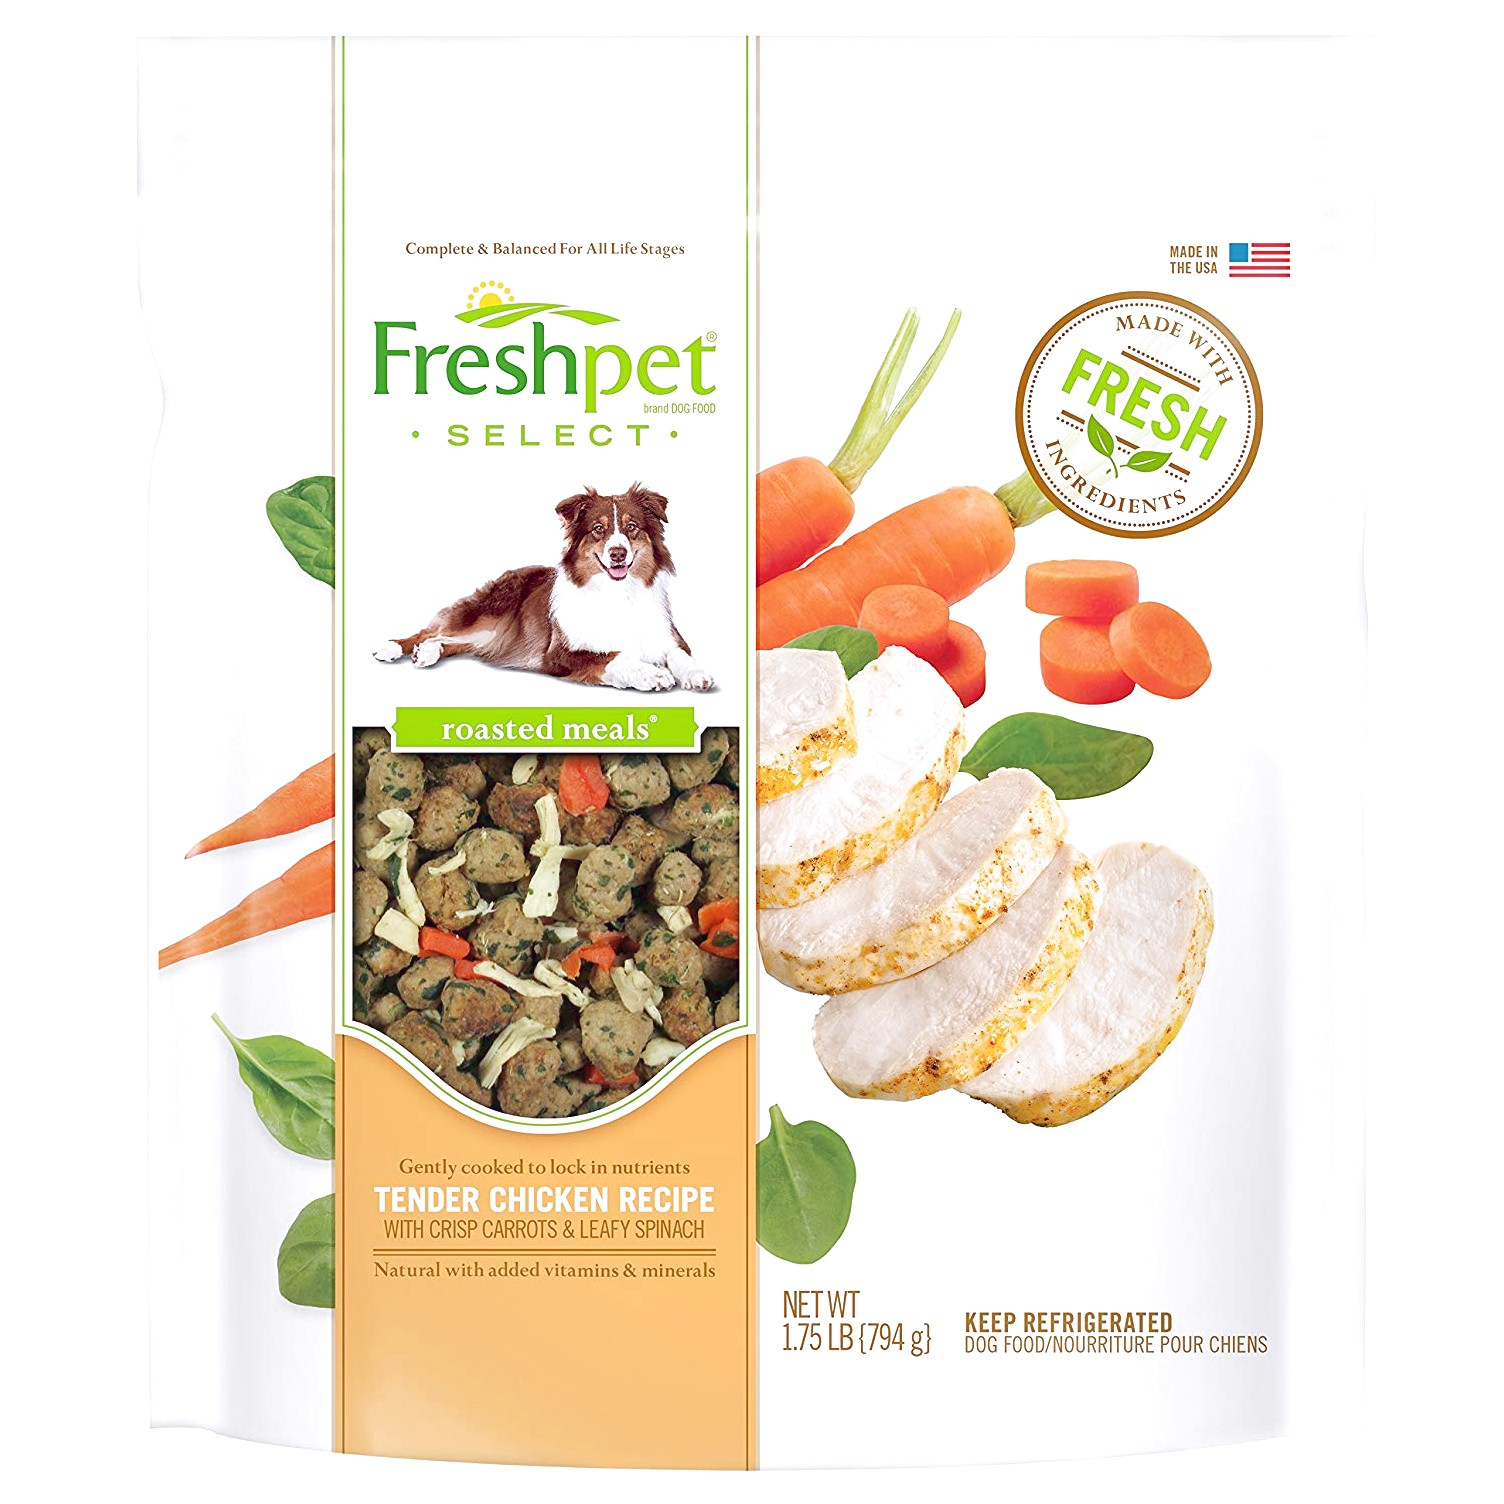 Refrigerated Dog Food